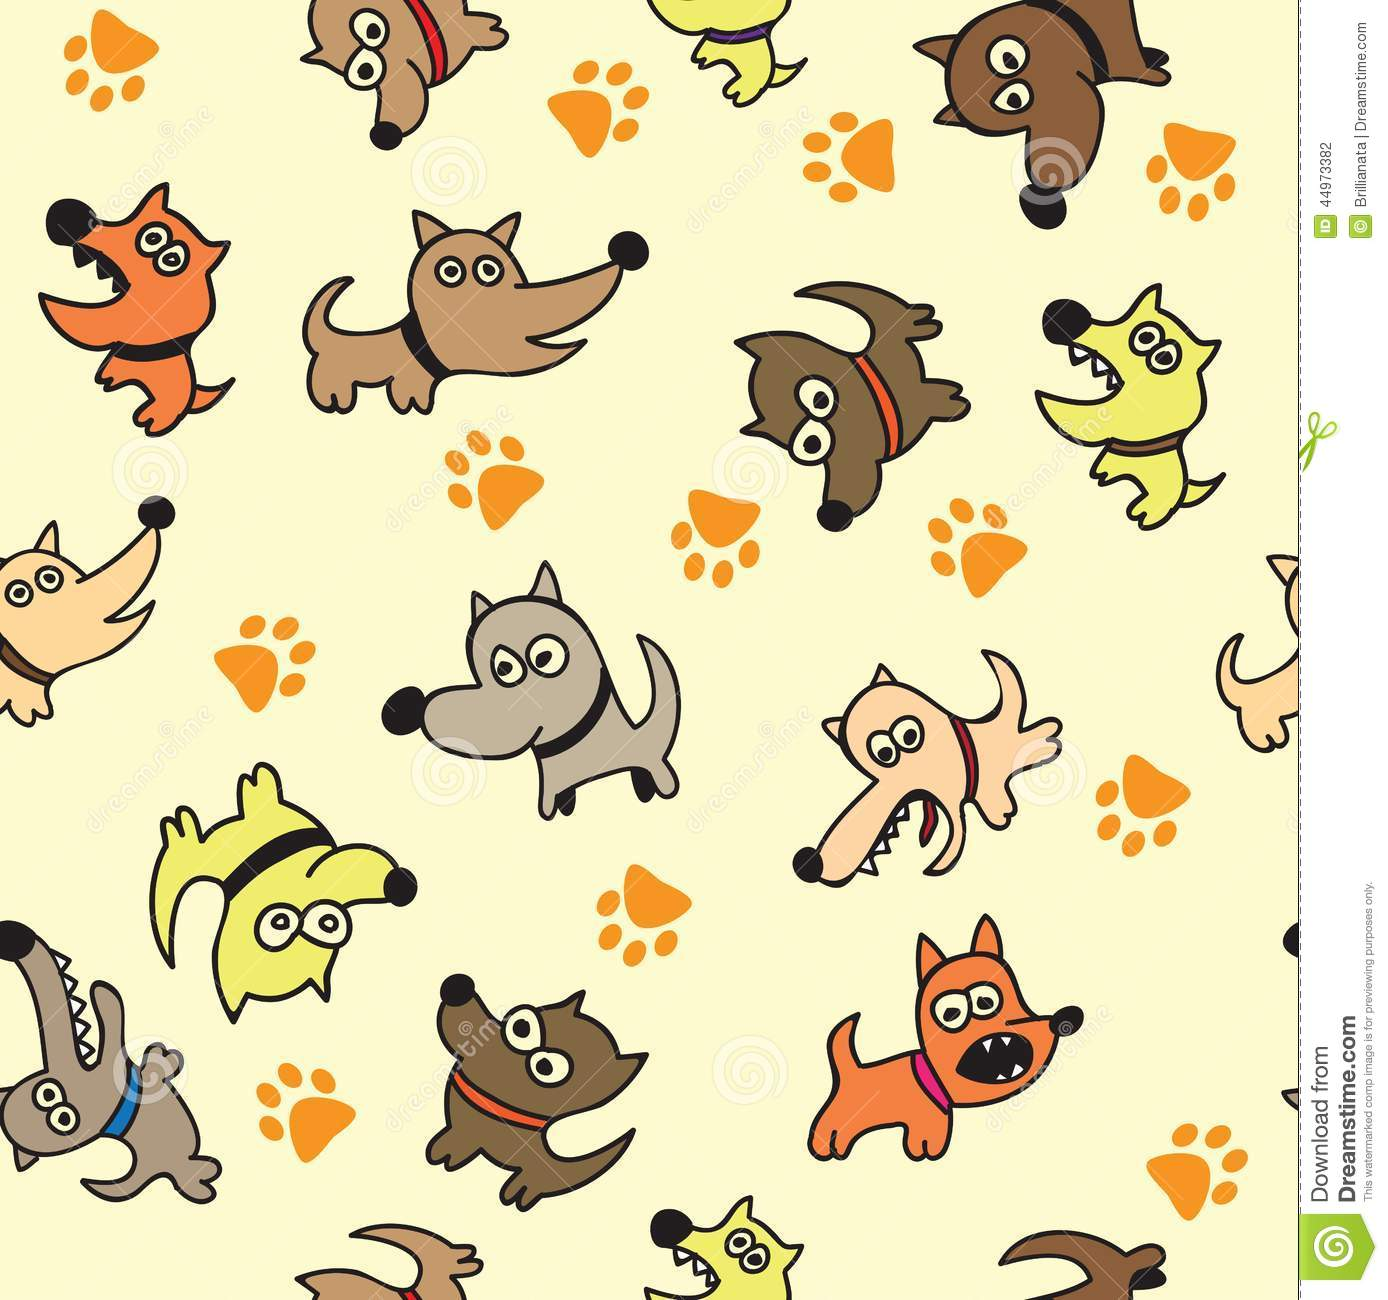 Cute Dog Seamless Background Stock Vector Image 44973382